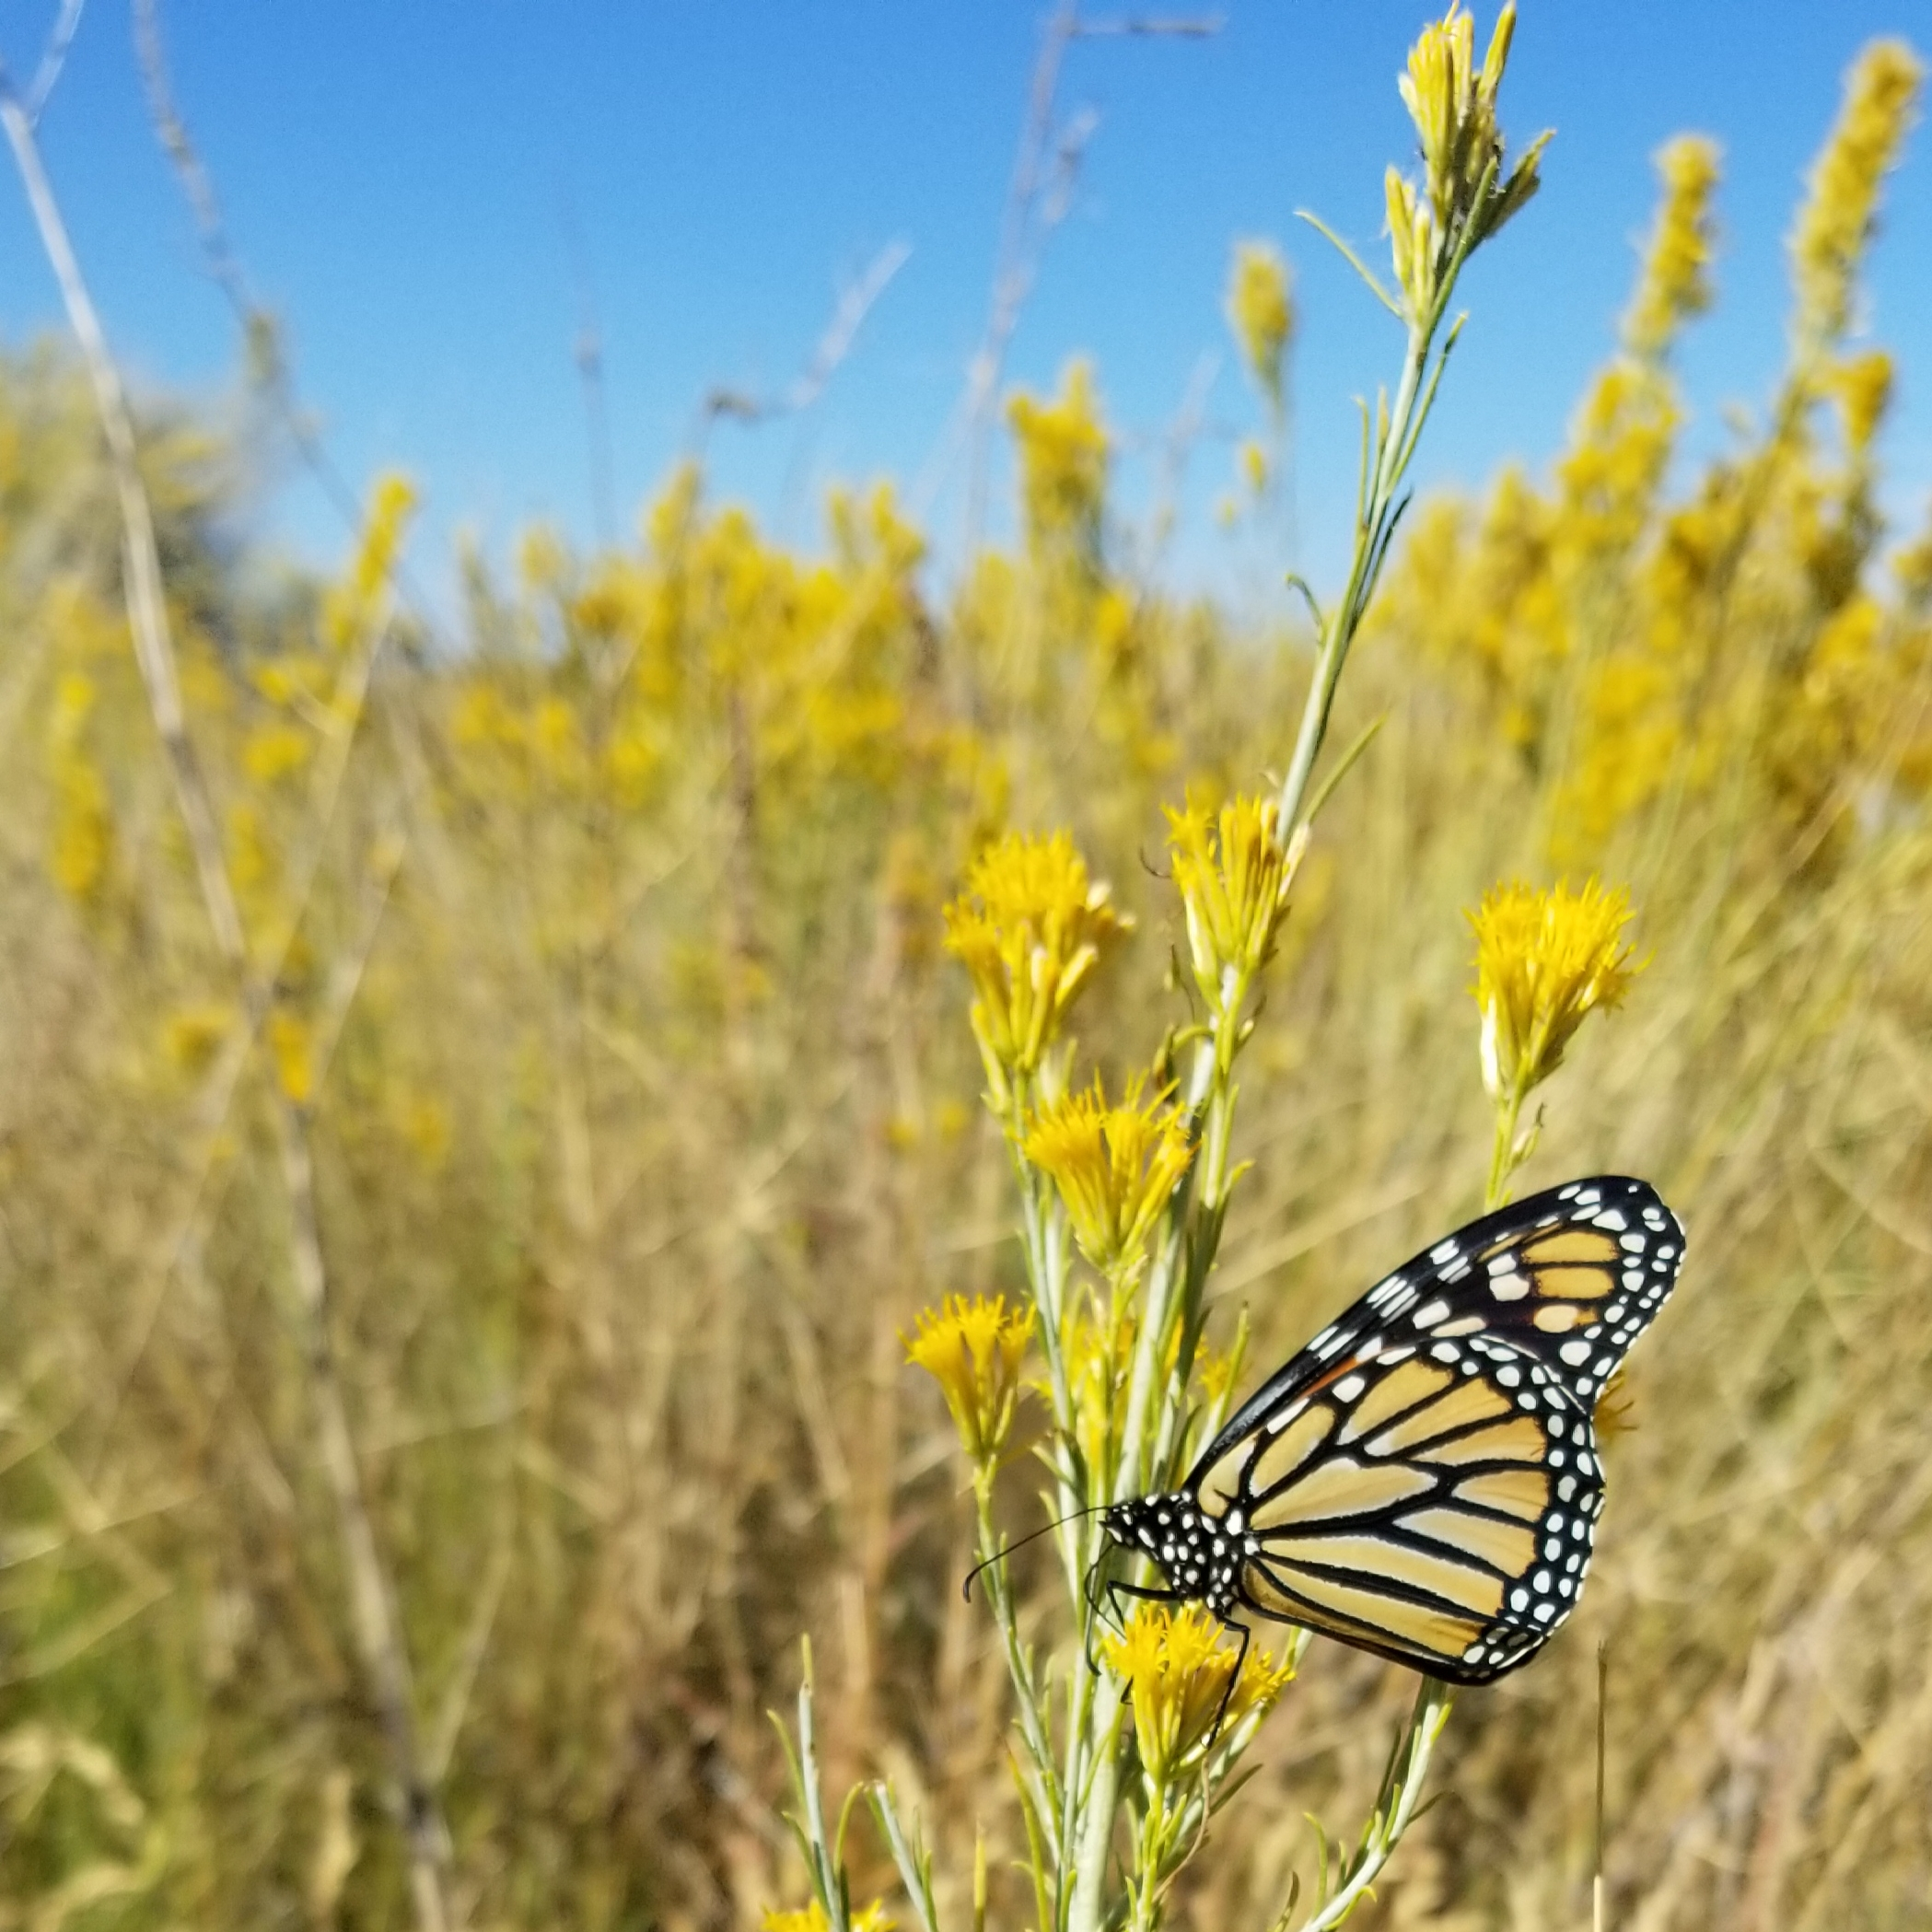 A monarch clings to a stalk bursting with yellow flowers, in an arid landscape.